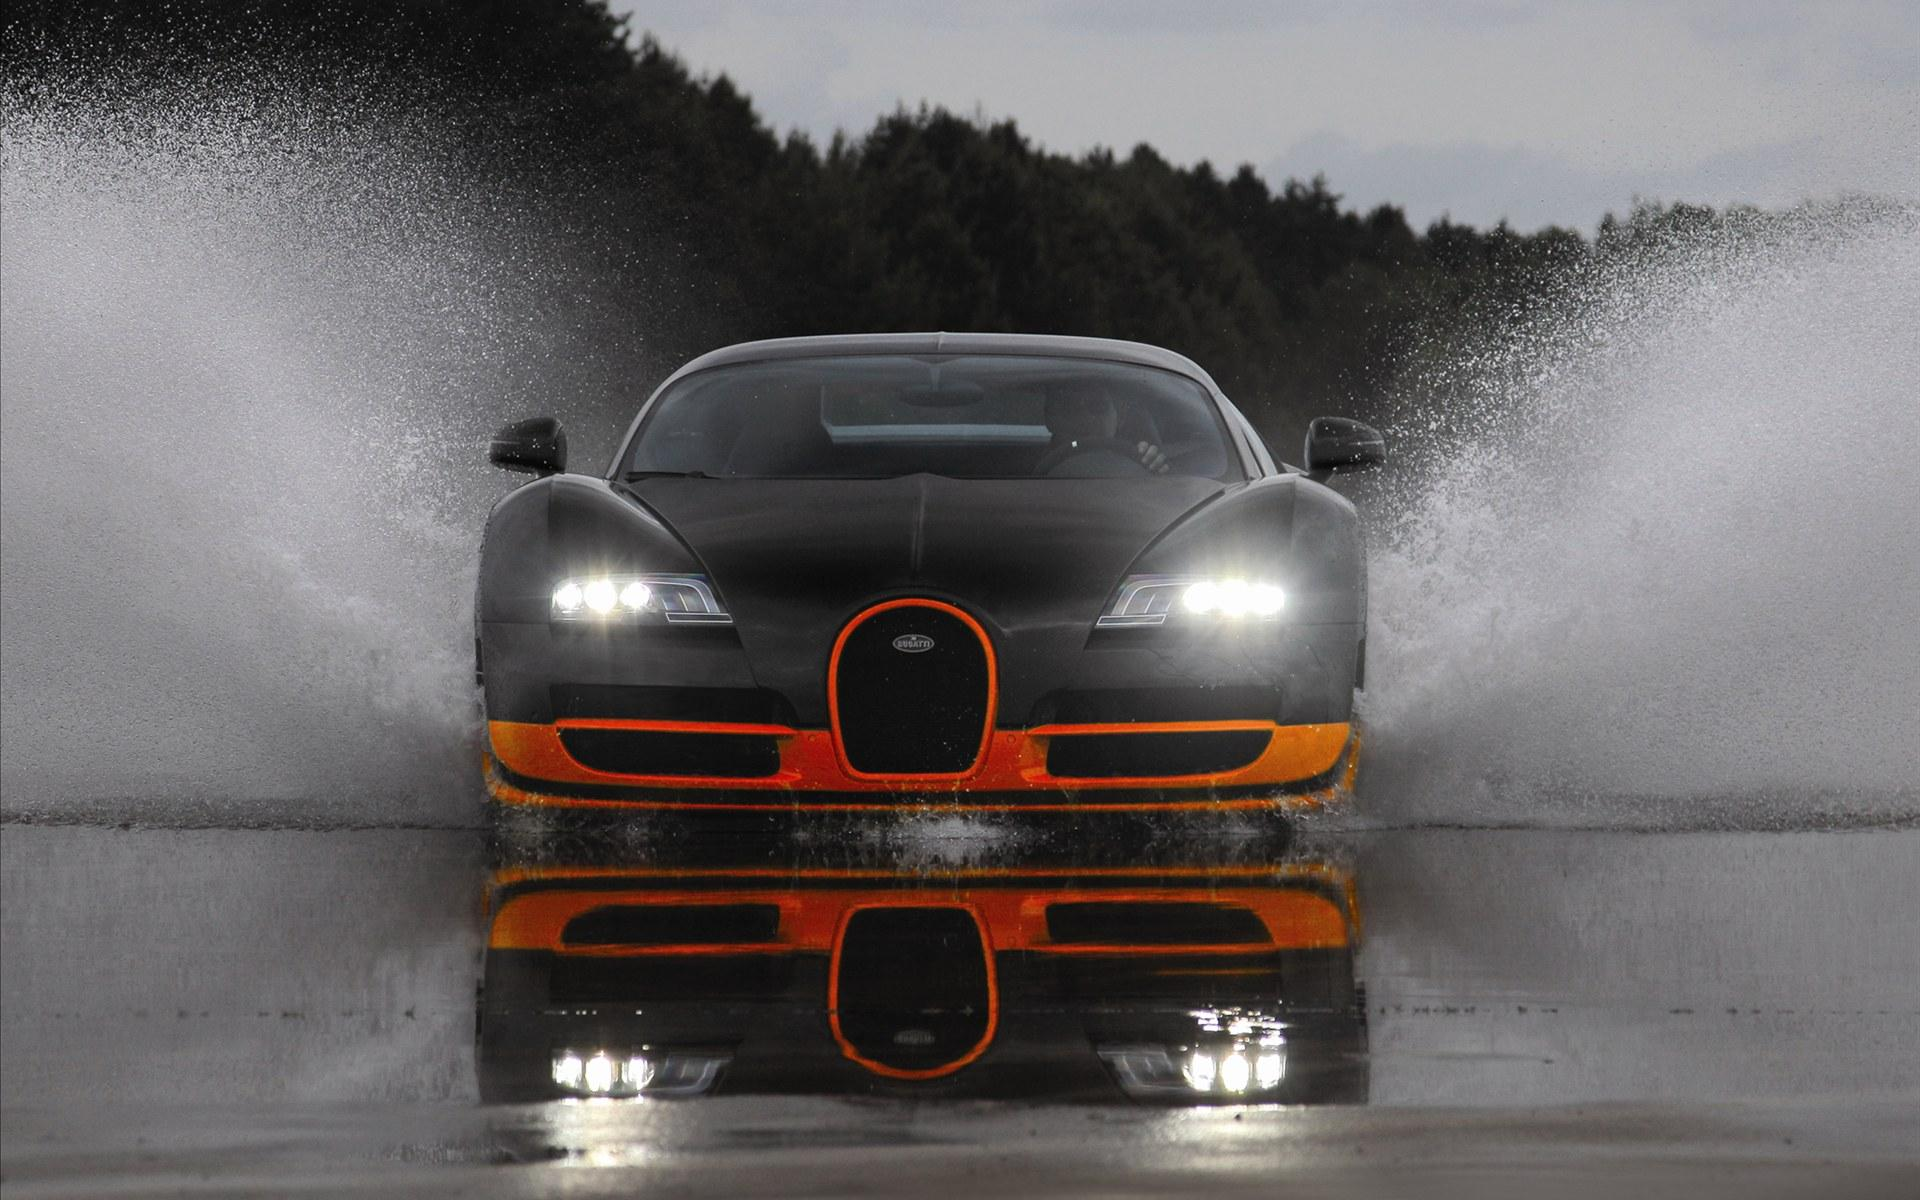 Обои Bugatti Veyron 16.4 Super Sports car 1920x1200